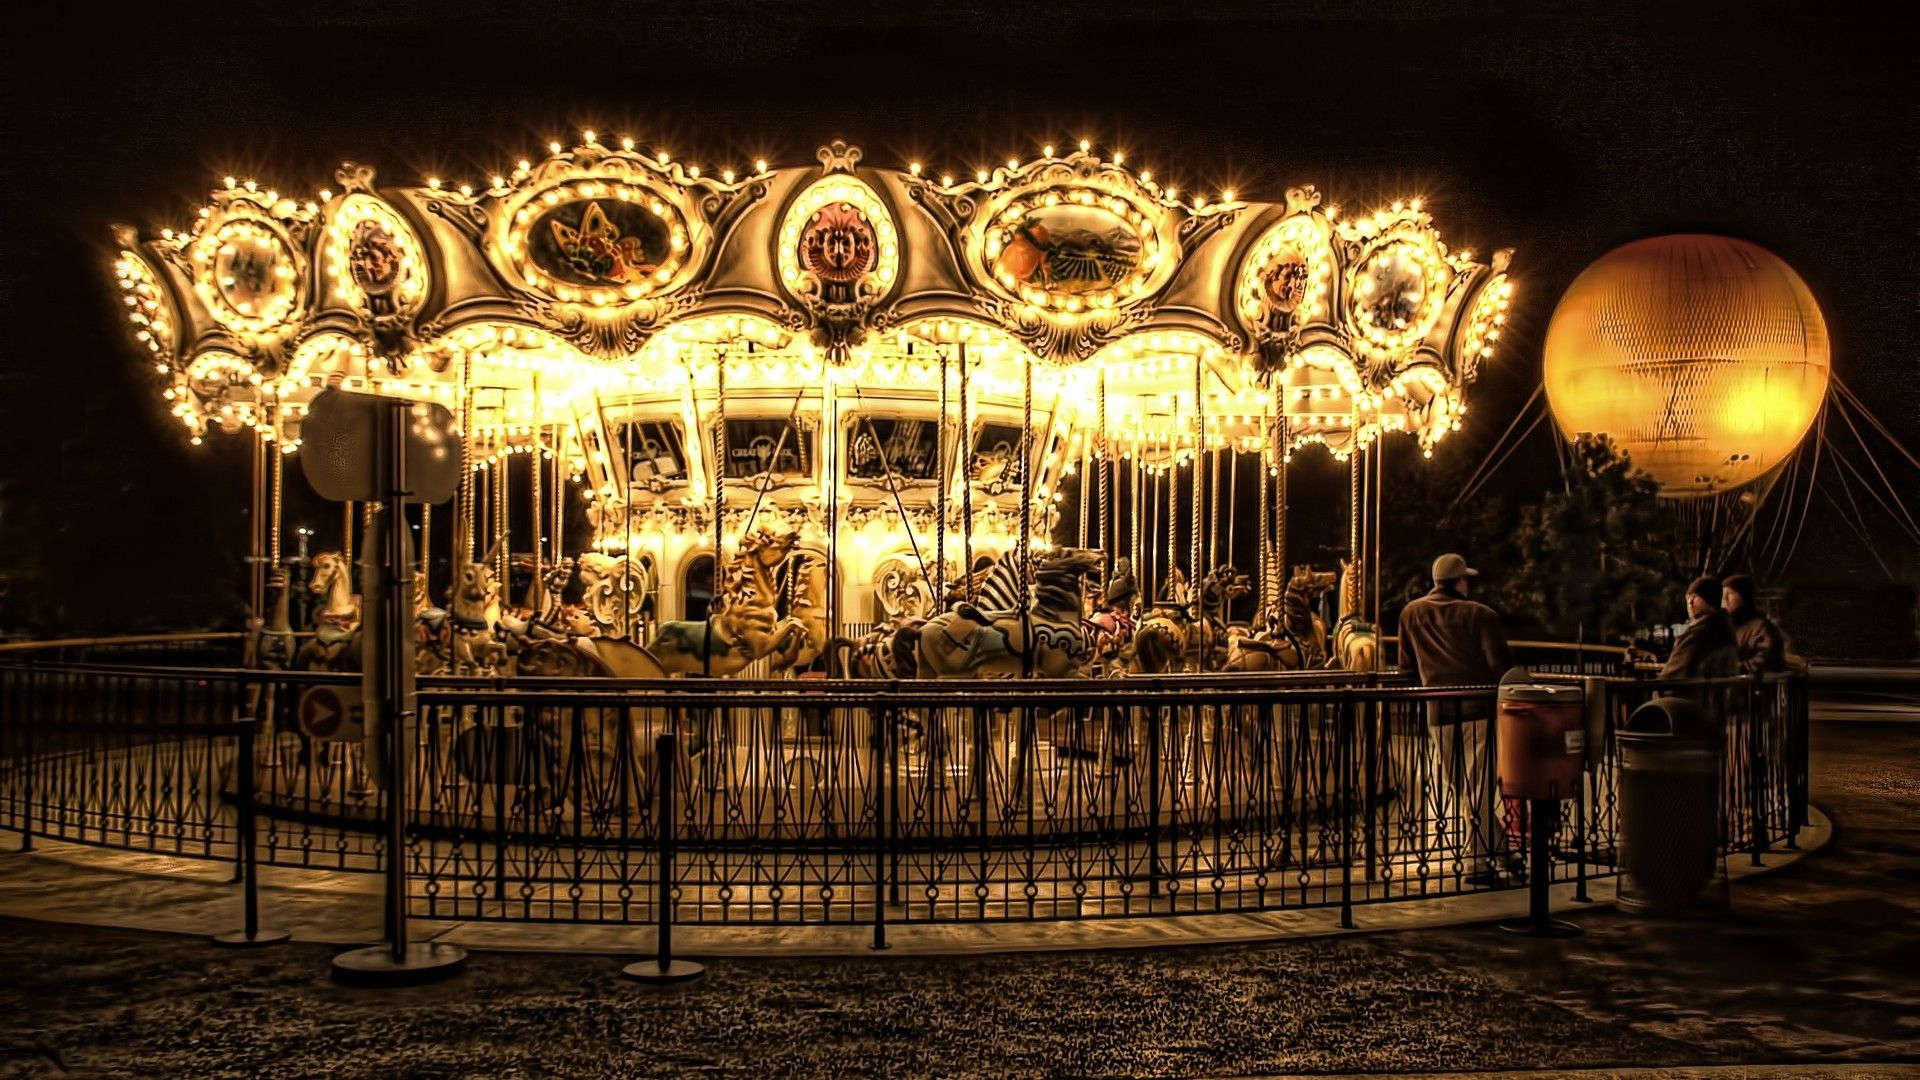 Carousel Wallpapers Top Free Carousel Backgrounds Wallpaperaccess